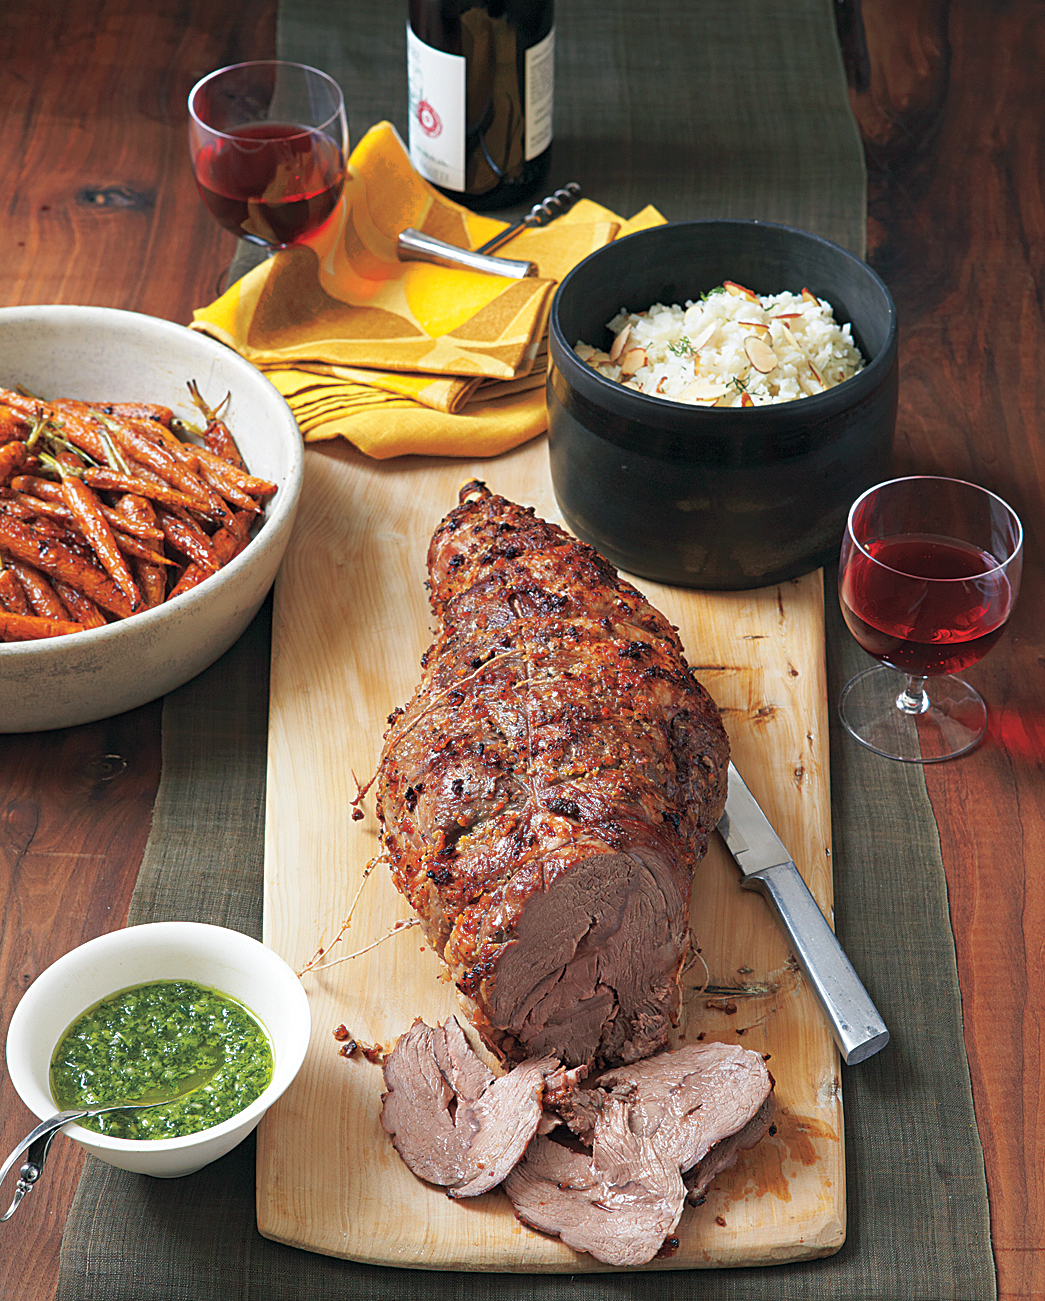 Roasted Leg of Lamb With Carrots and Honey-Mint Sauce